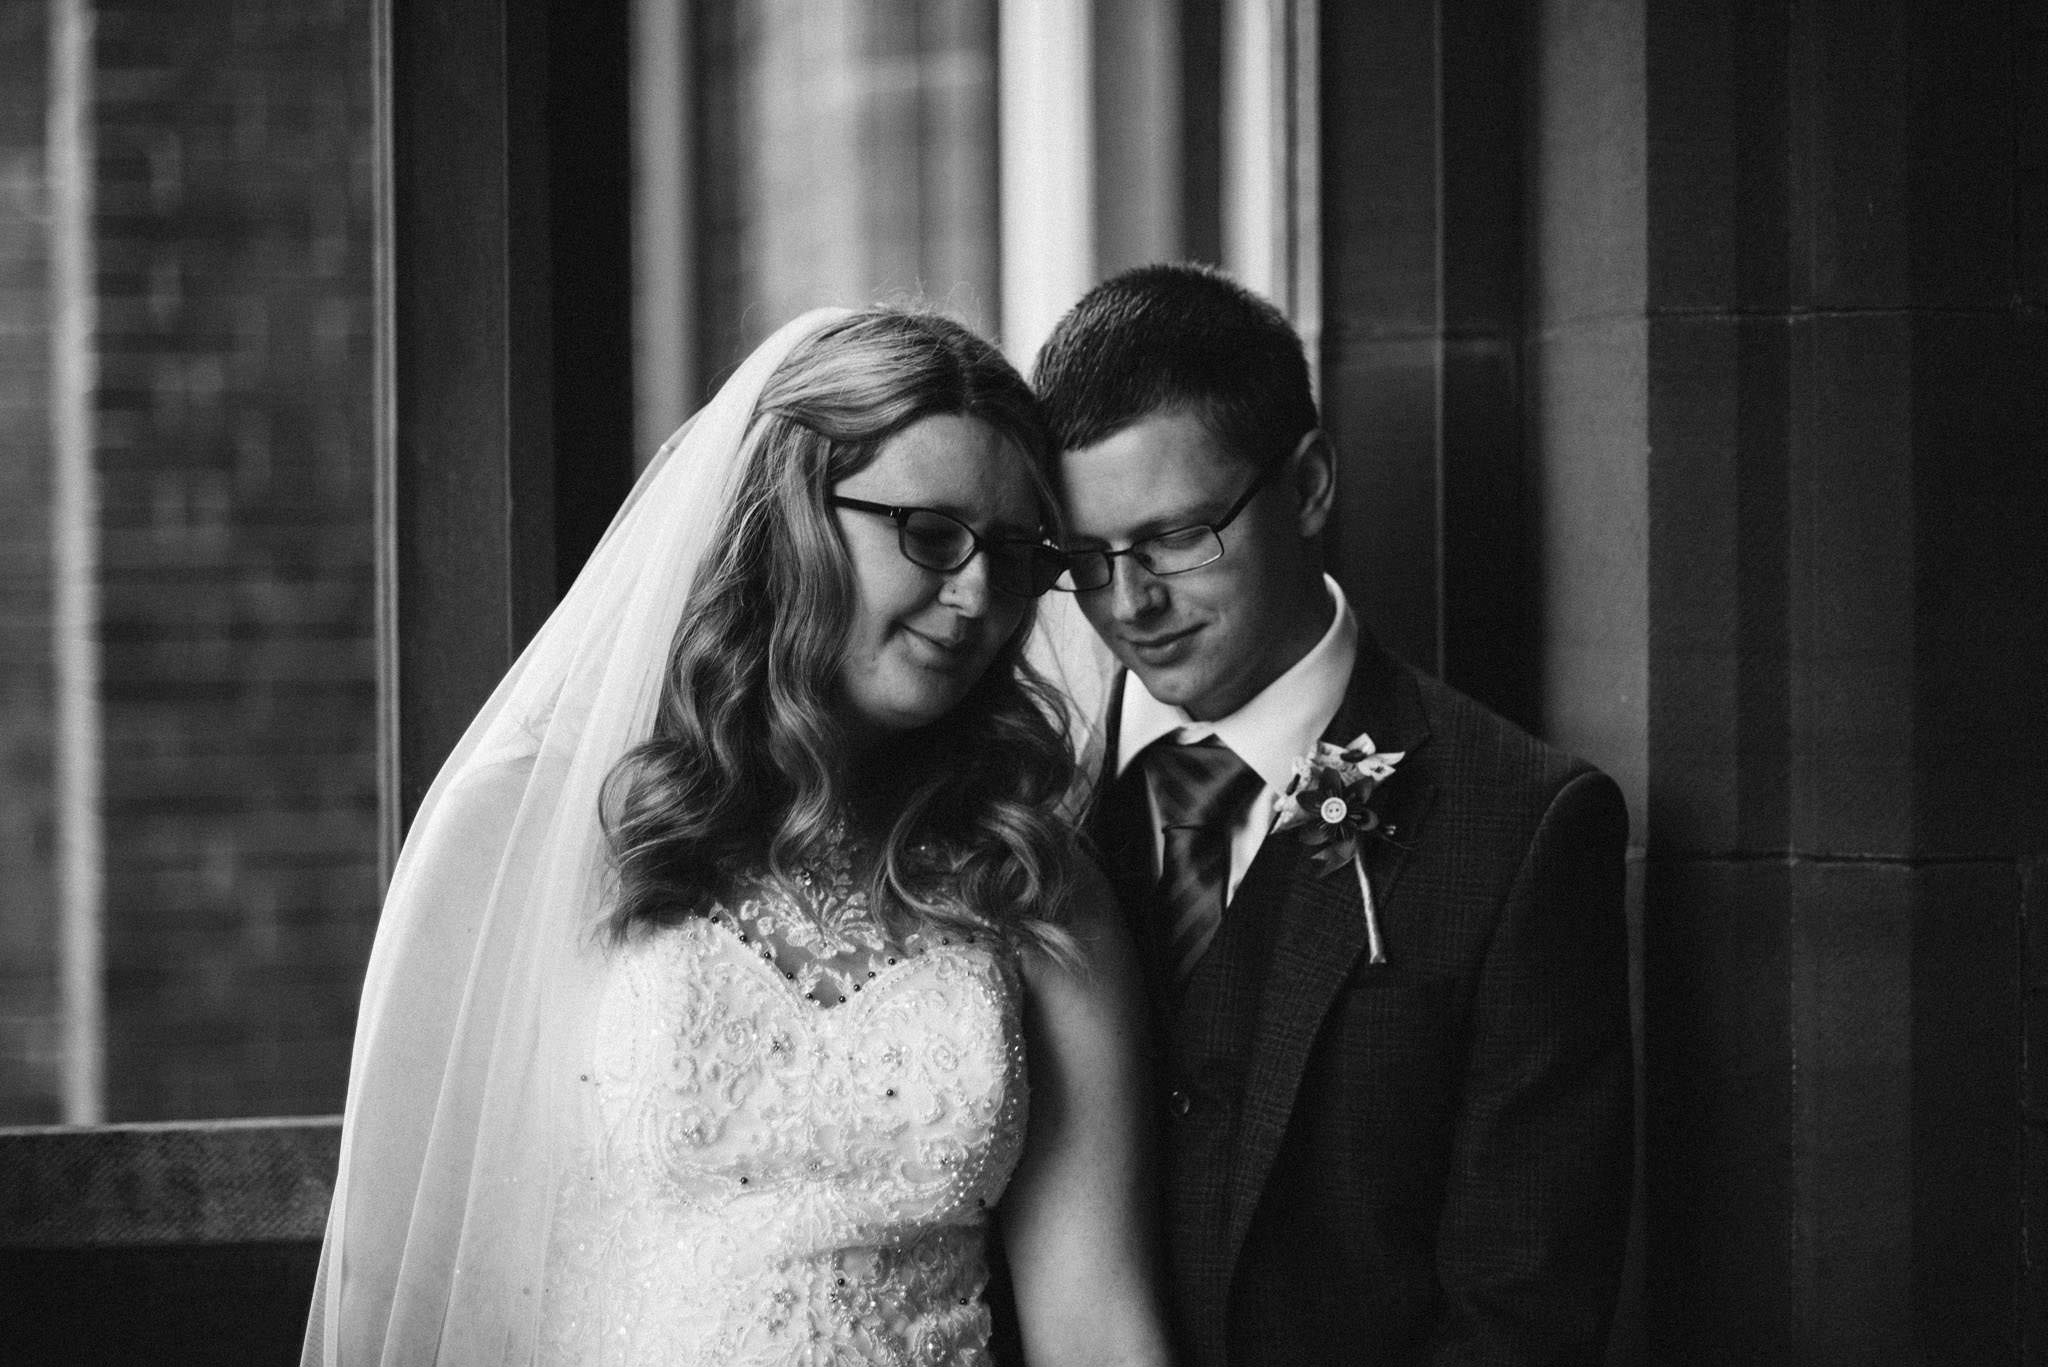 Harry Potter Themed Wedding, Riddel Hall, Great Hall, Hogwarts, Queens University Belfast, Northern Ireland